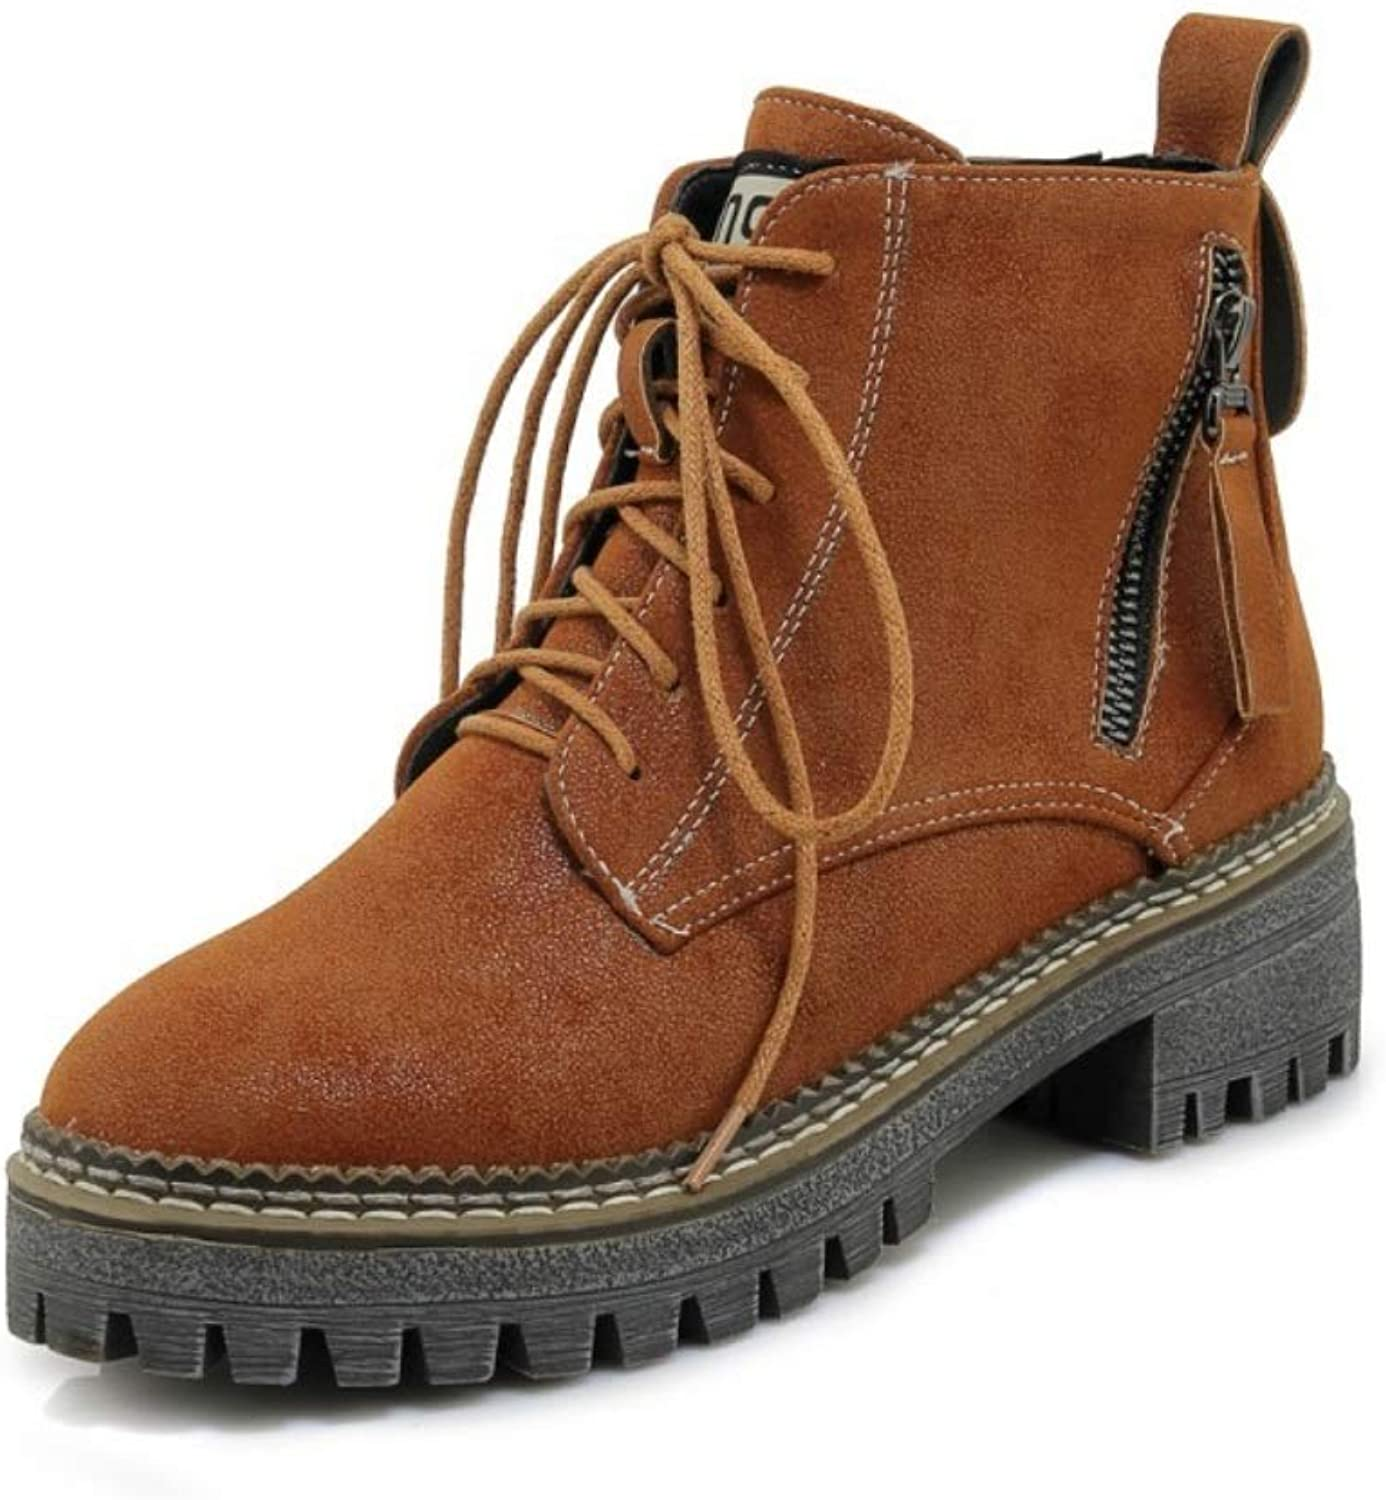 Ladies Ankle Winter Boots 2018 Autumn and Winter New Martin Boots Bare Boots Large Size Women's Boots Non-Slip Boots